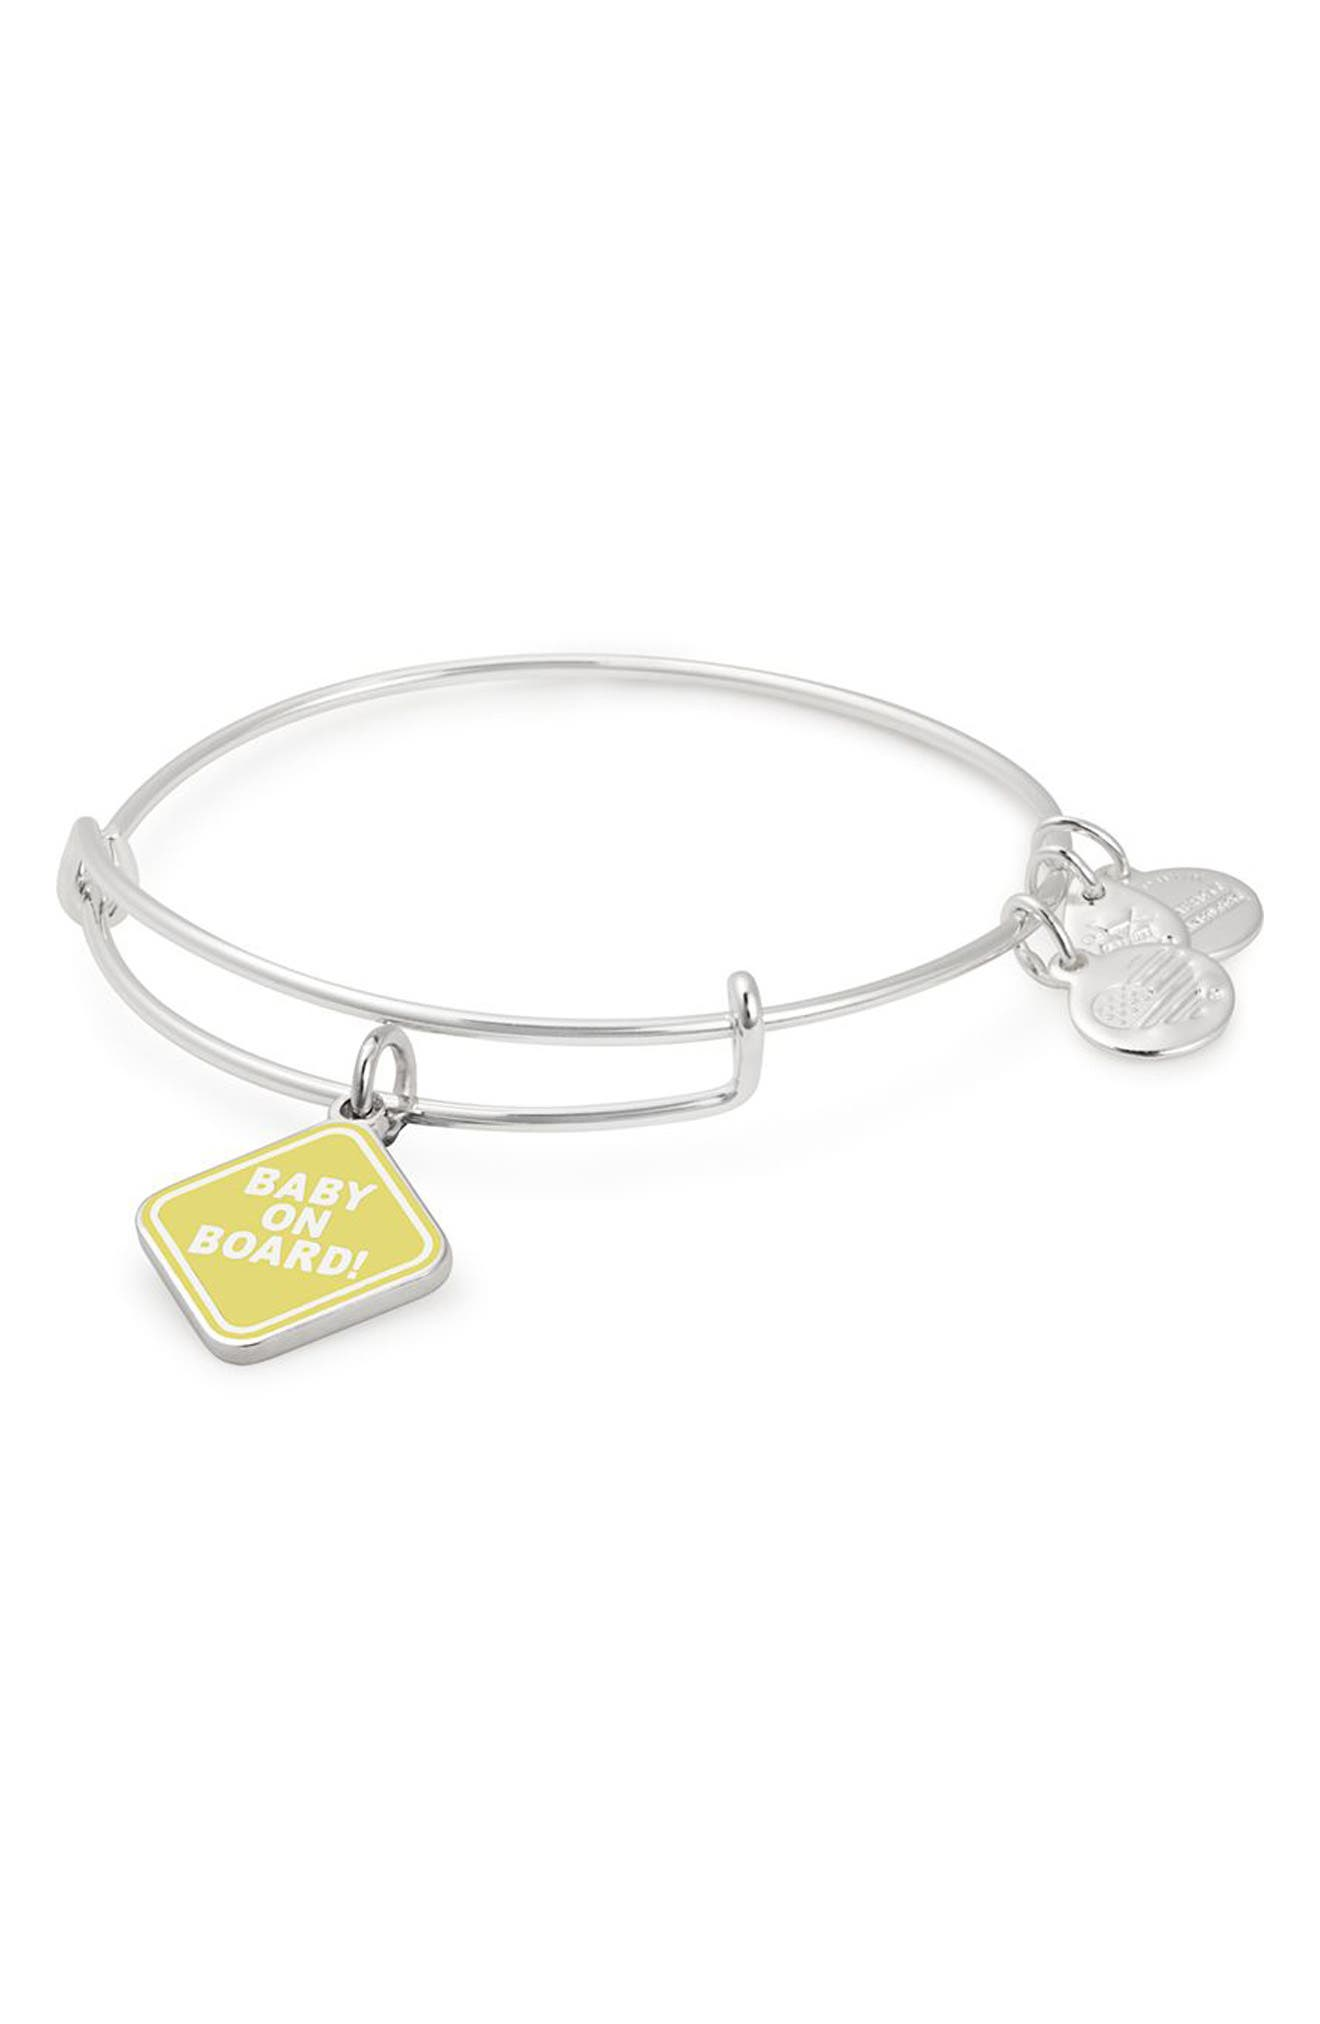 ALEX AND ANI Baby On Board Charm Bangle in Silver